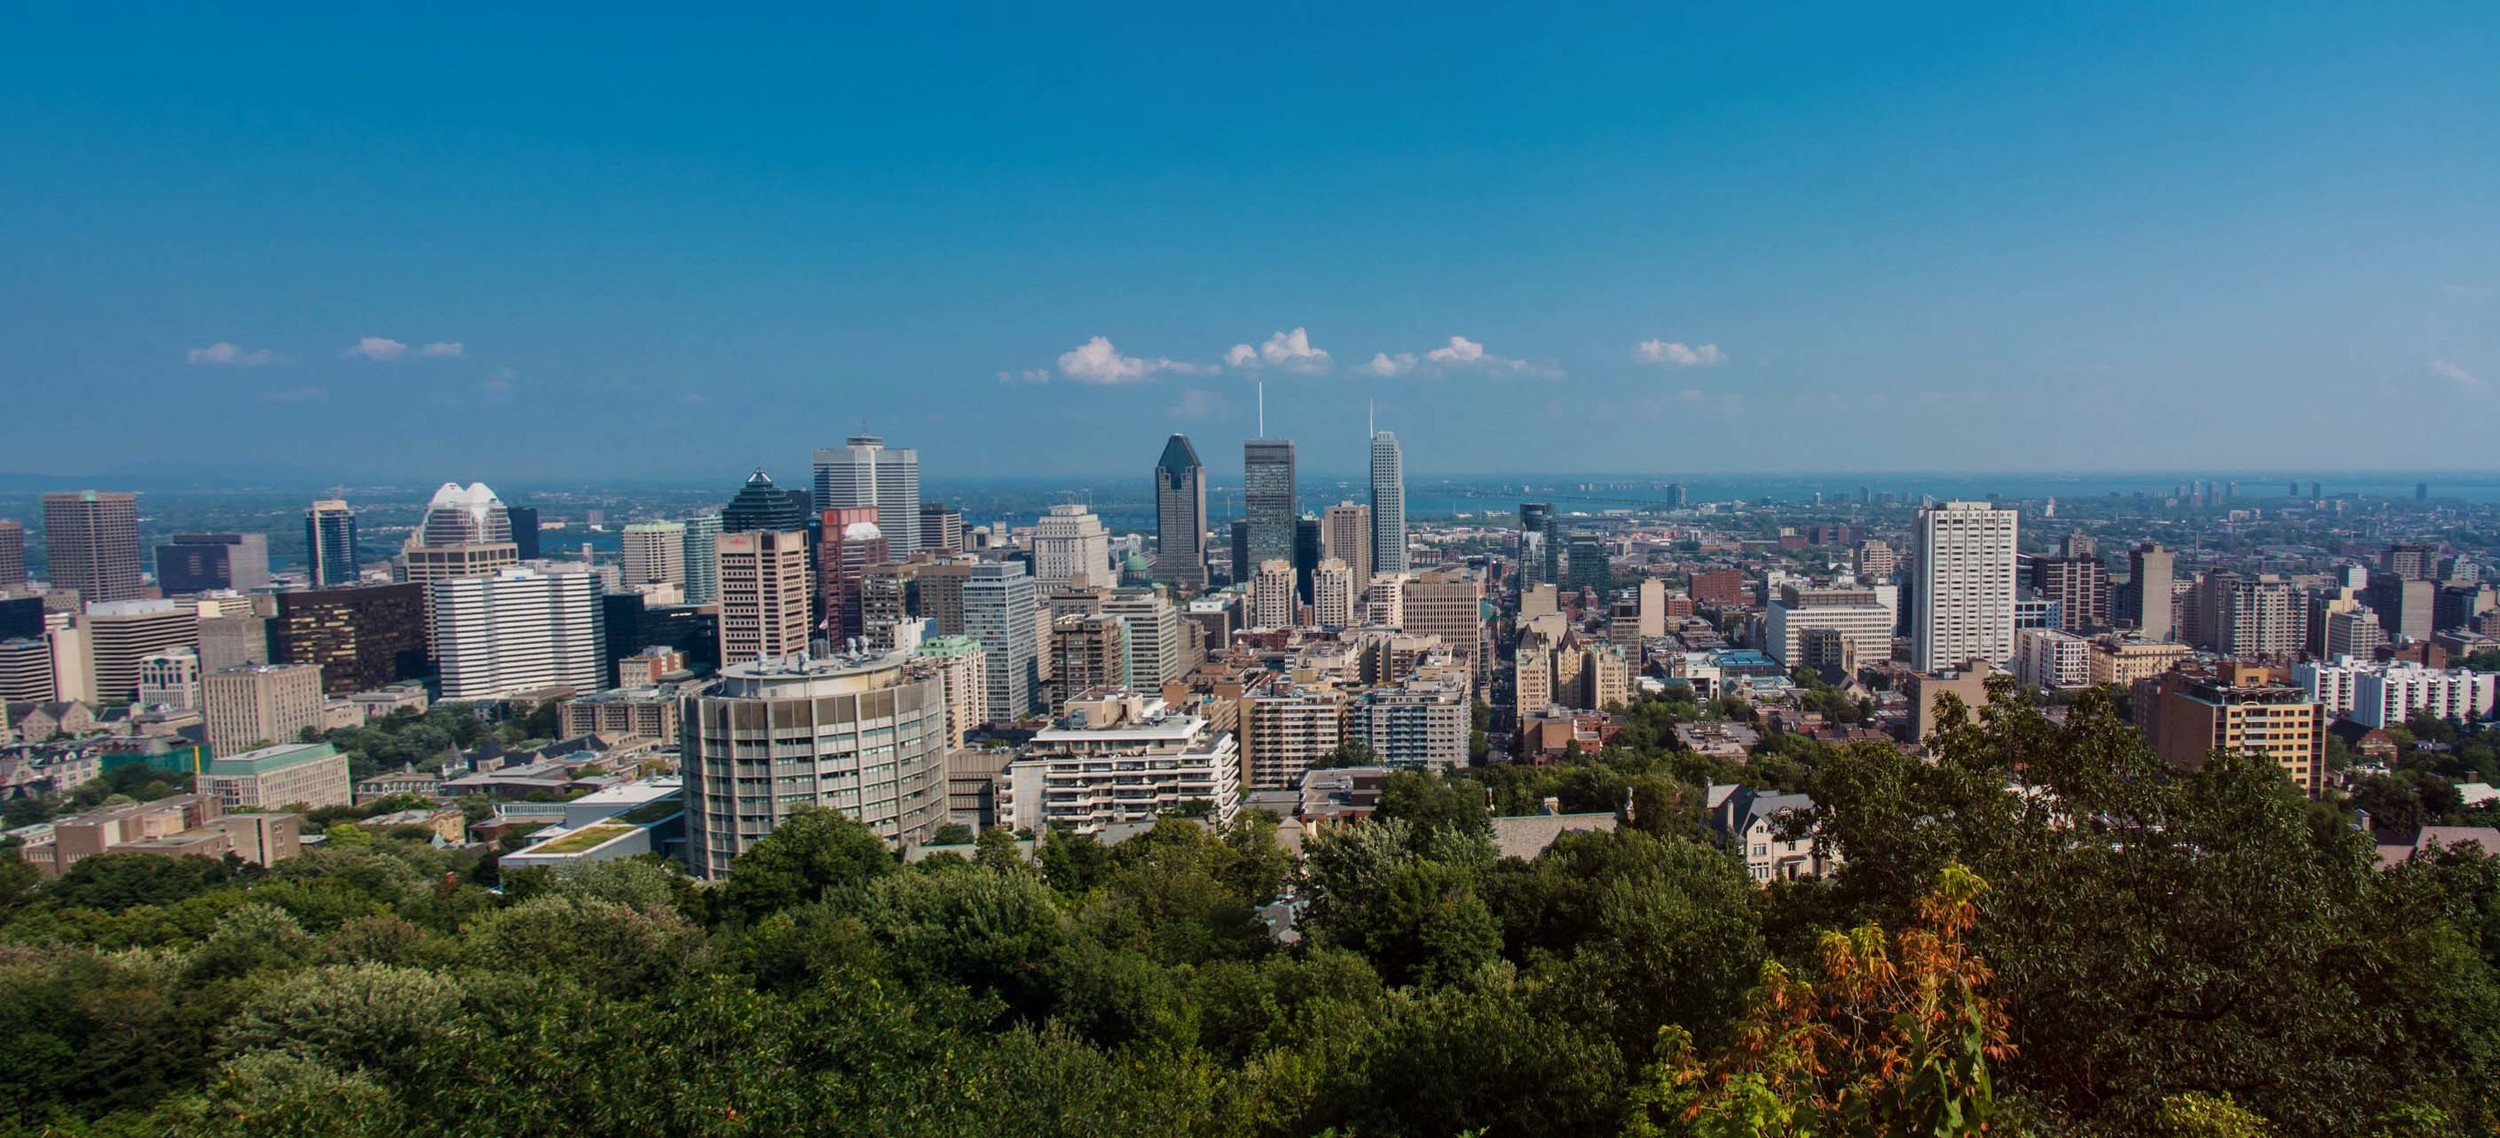 montreal2013-72a.jpg